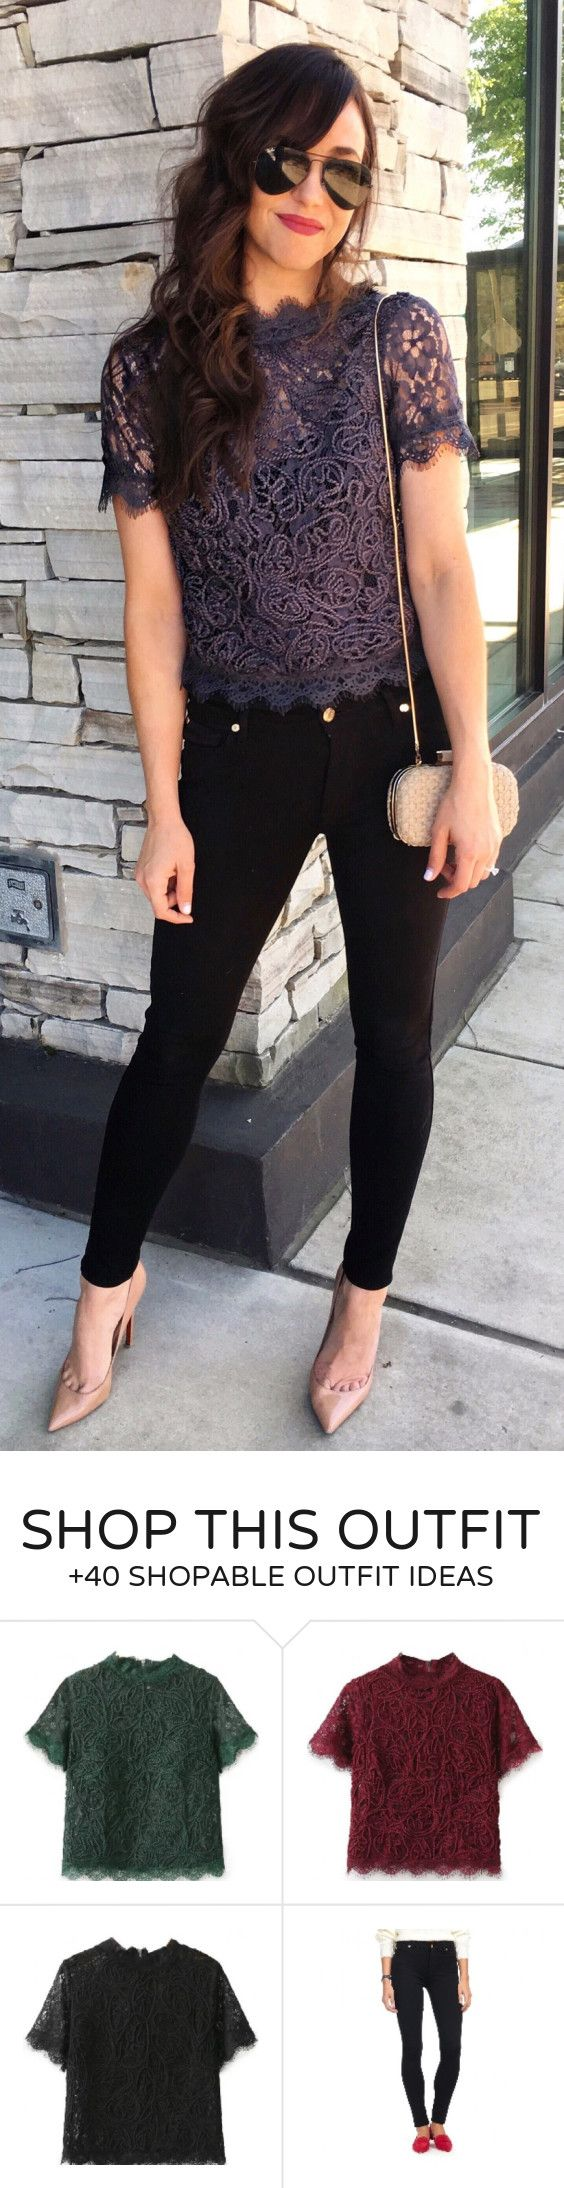 """#spring #outfits Sunday Night Mexican Was A Huge Success Ran Into Some Friends, Pulled Up A Table, And Nilla Got To Eat The Table Scraps Now Its A Marathon Of """"breaking Bad"""" As The Cherry On Top To The Weekend Love This $23 Top // Purple Lace Top + Black Skinny Jeans + Nude Pumps"""